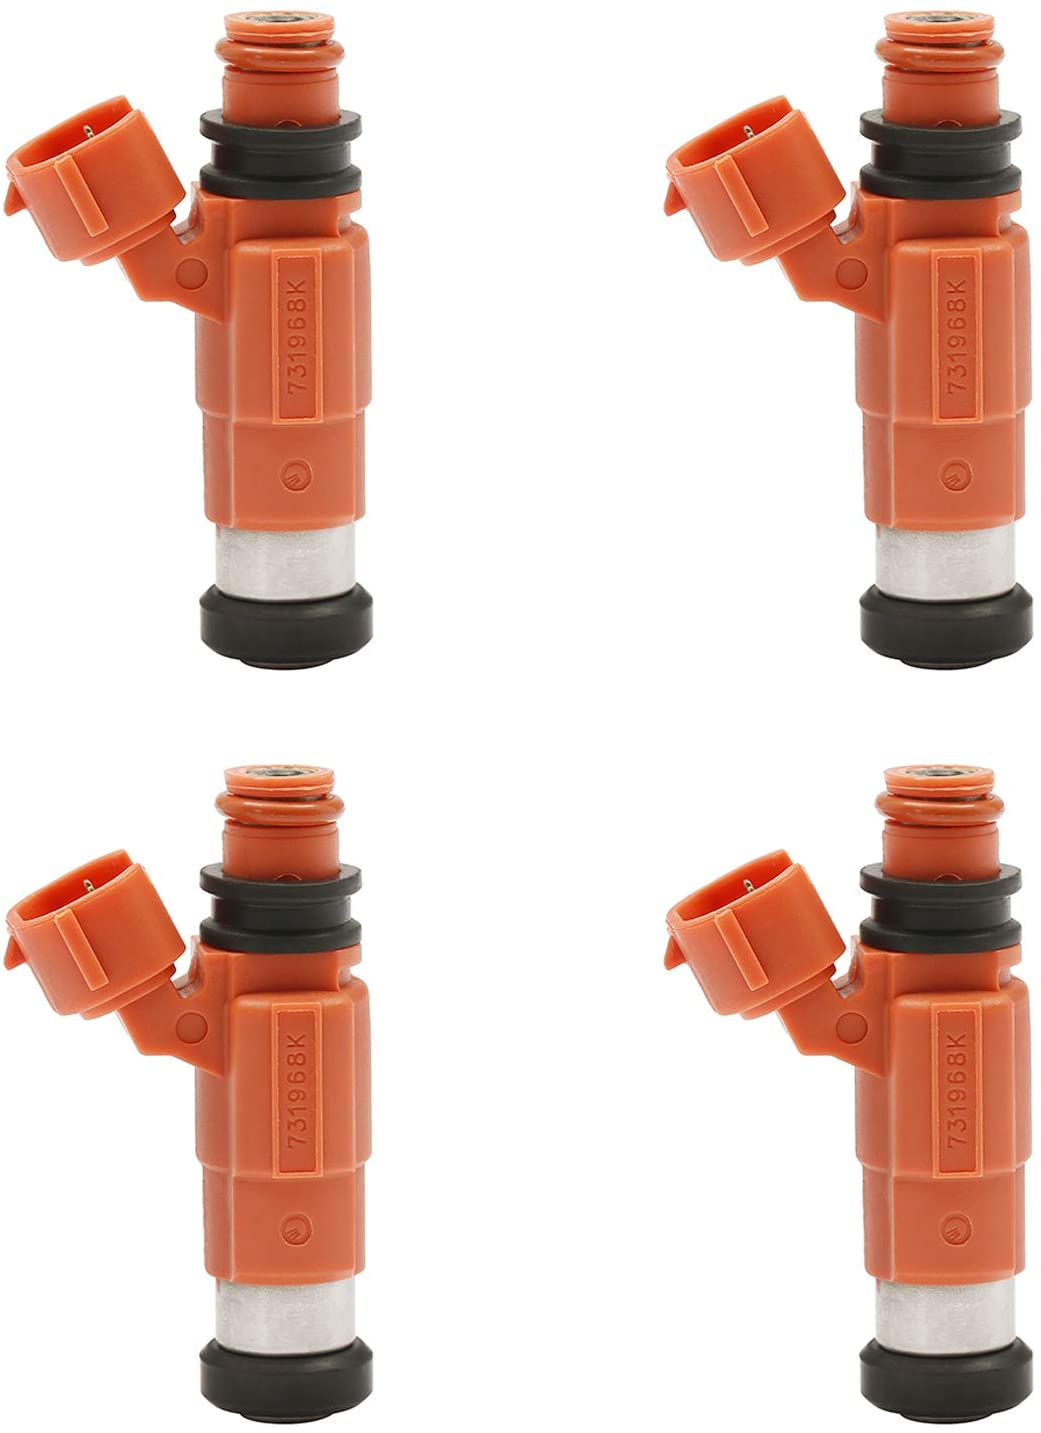 Fuel Injector 4 Holes 4Pcs | Replacement for Yamaha Outboard 115 HP Marine Mitsubishi Eclipse Galant Mirage Chrysler Dodge Suzuki | Replace# 68V-8A360-00-00, INP-771, CDH-210